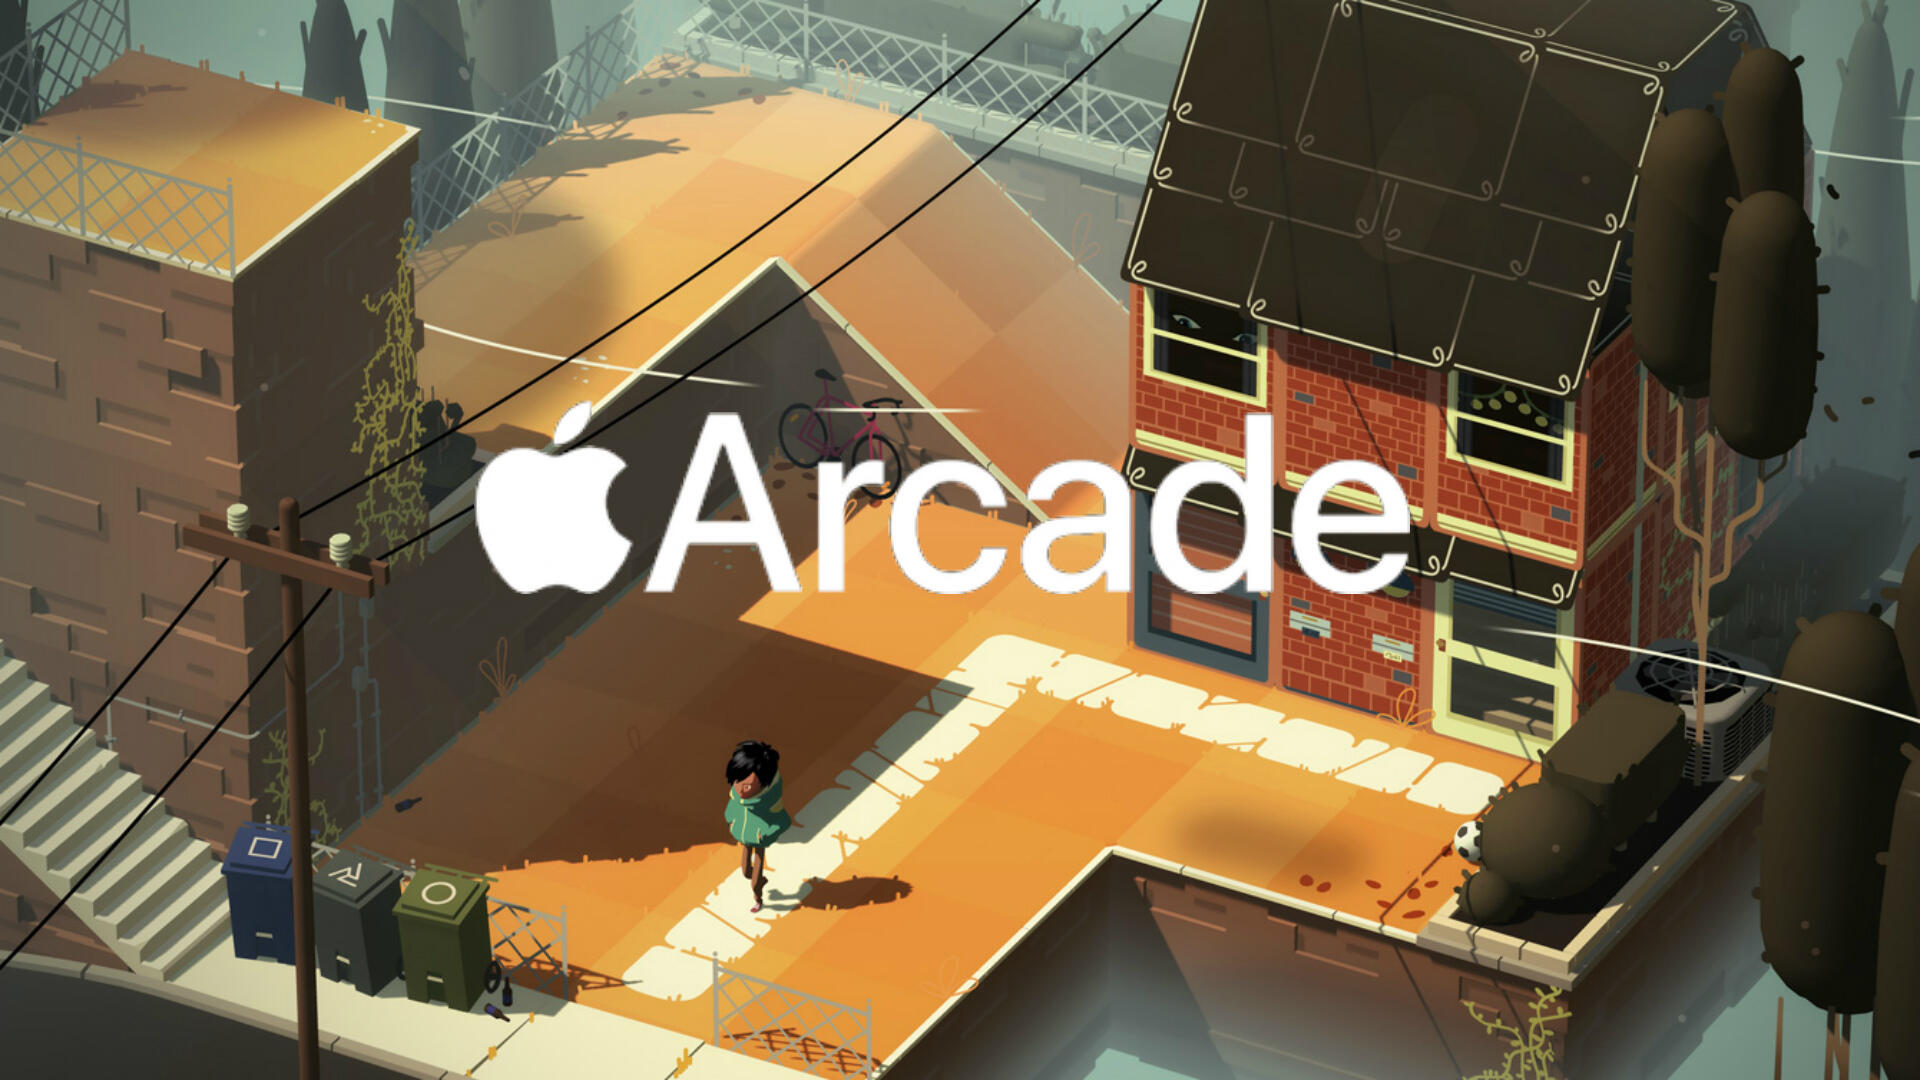 """""""Apple Arcade Games Will Be Great for Families, Respect User Privacy and Will Not Have Ads or Require Any Additional Purchases"""""""